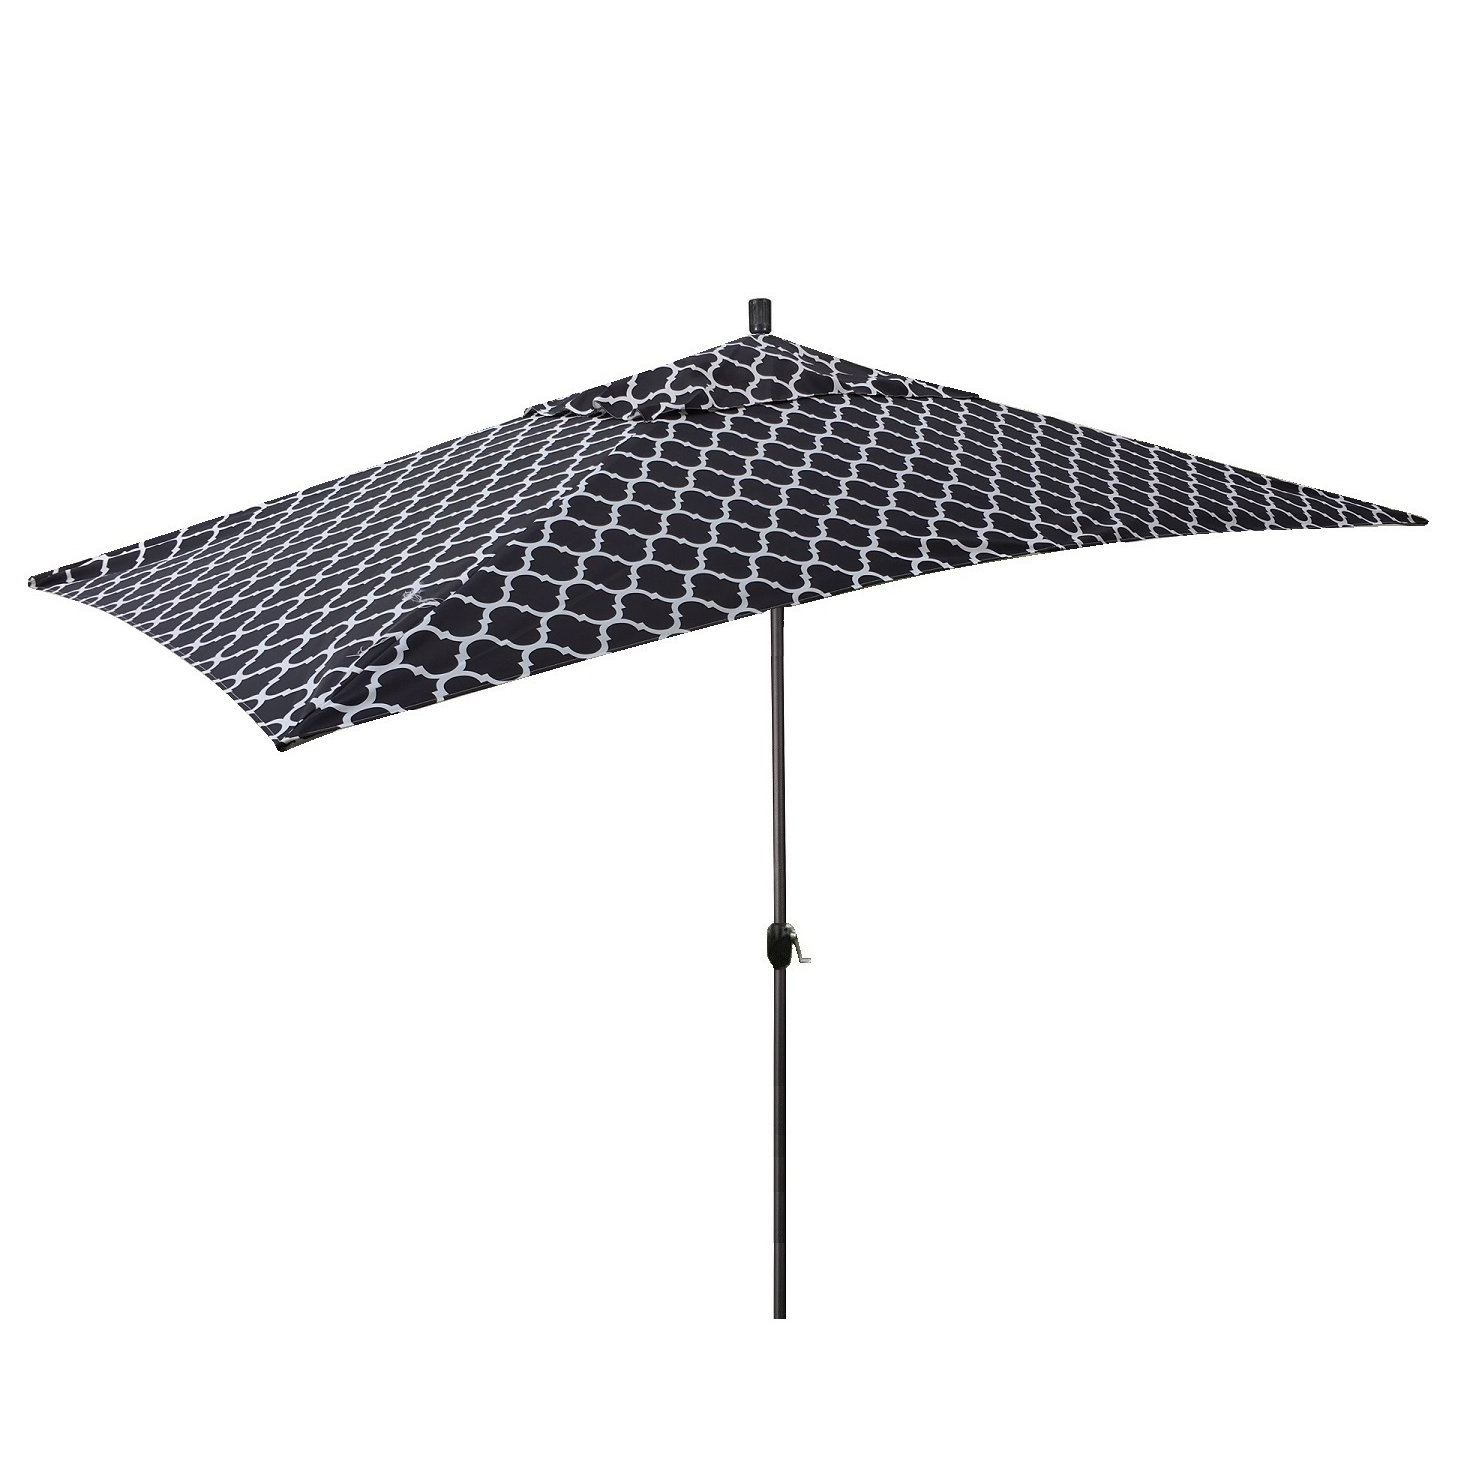 Sherlyn 10' X 6' Rectangular Market Umbrella With Regard To Famous Northfleet Rectangular Market Umbrellas (View 6 of 20)